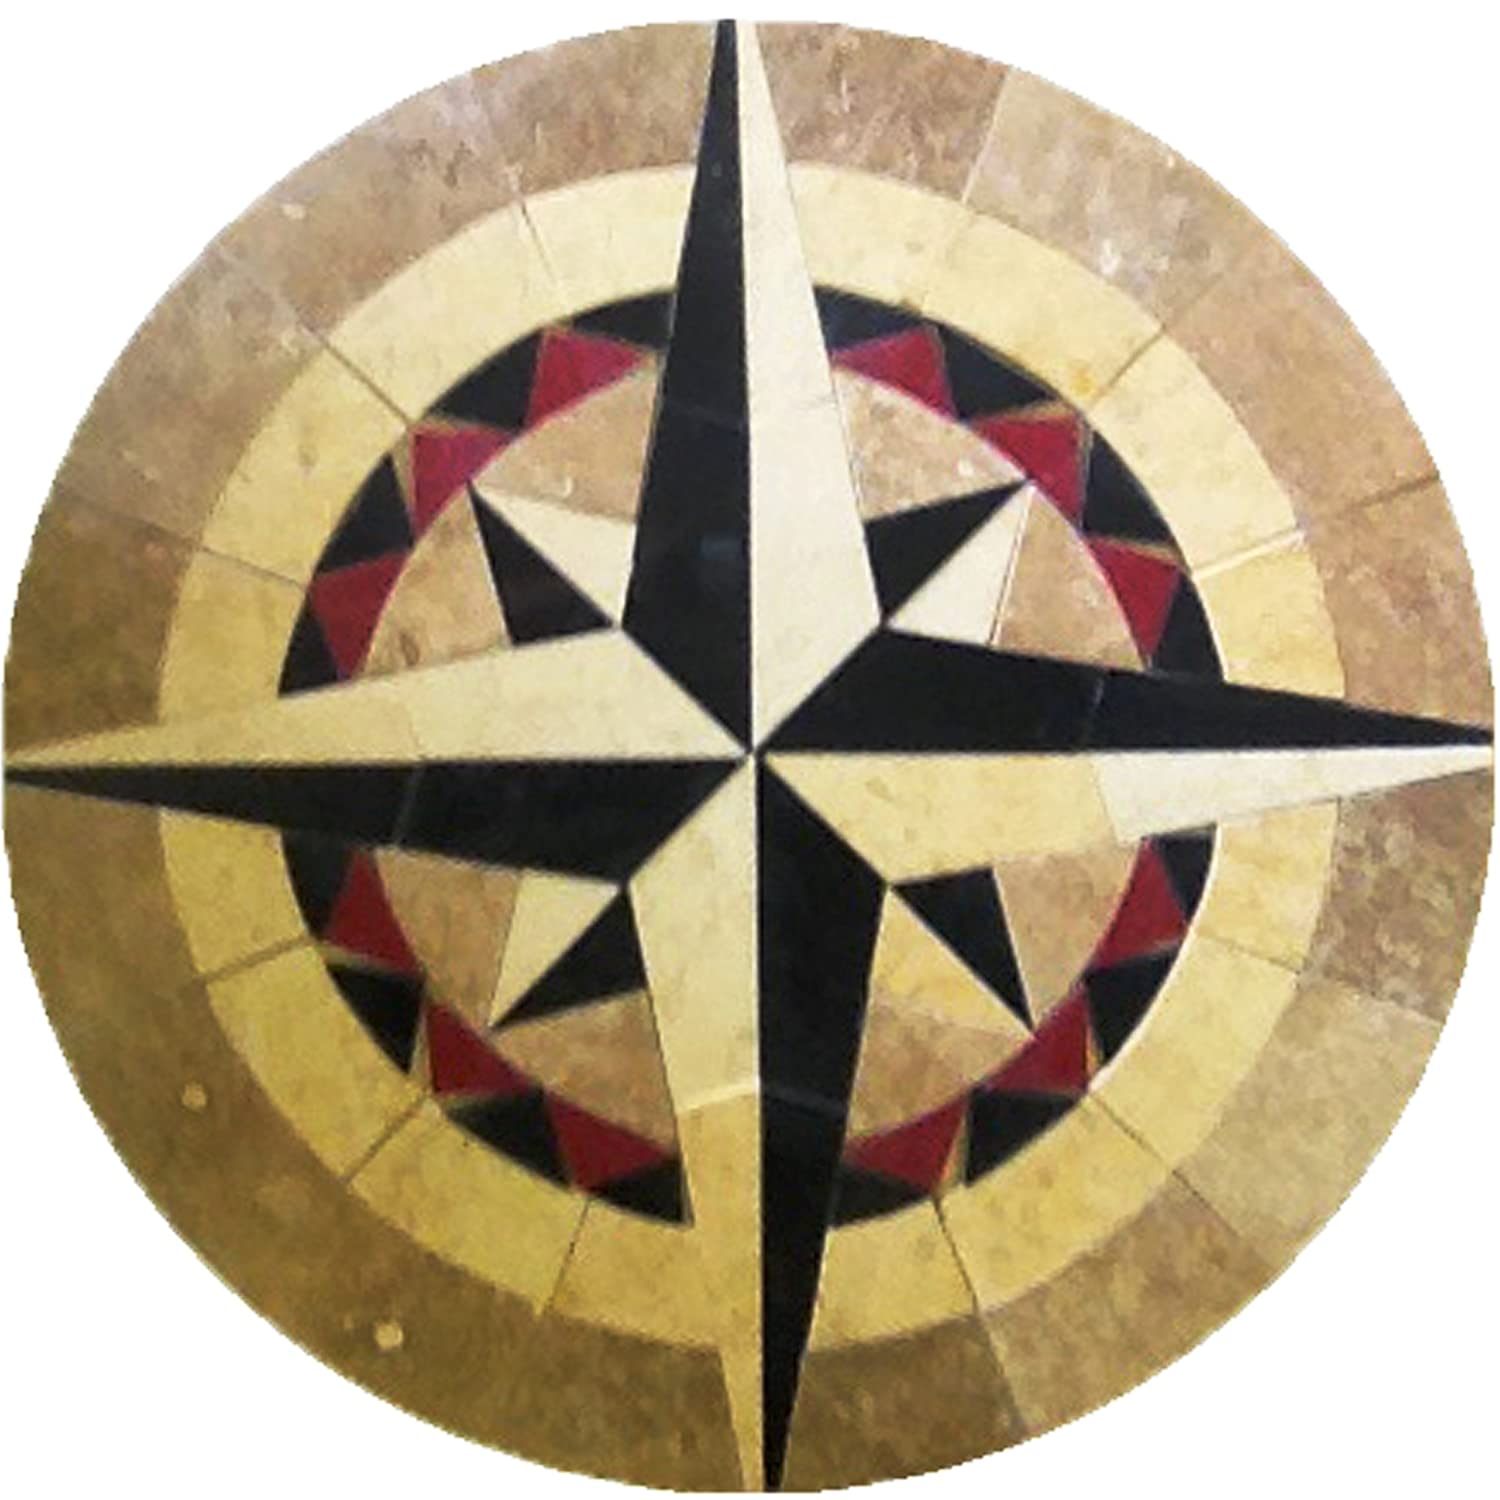 Round Mosaic Tile Patterns: Floor Marble Round Mosaic Medallion Nautical Compass Rose